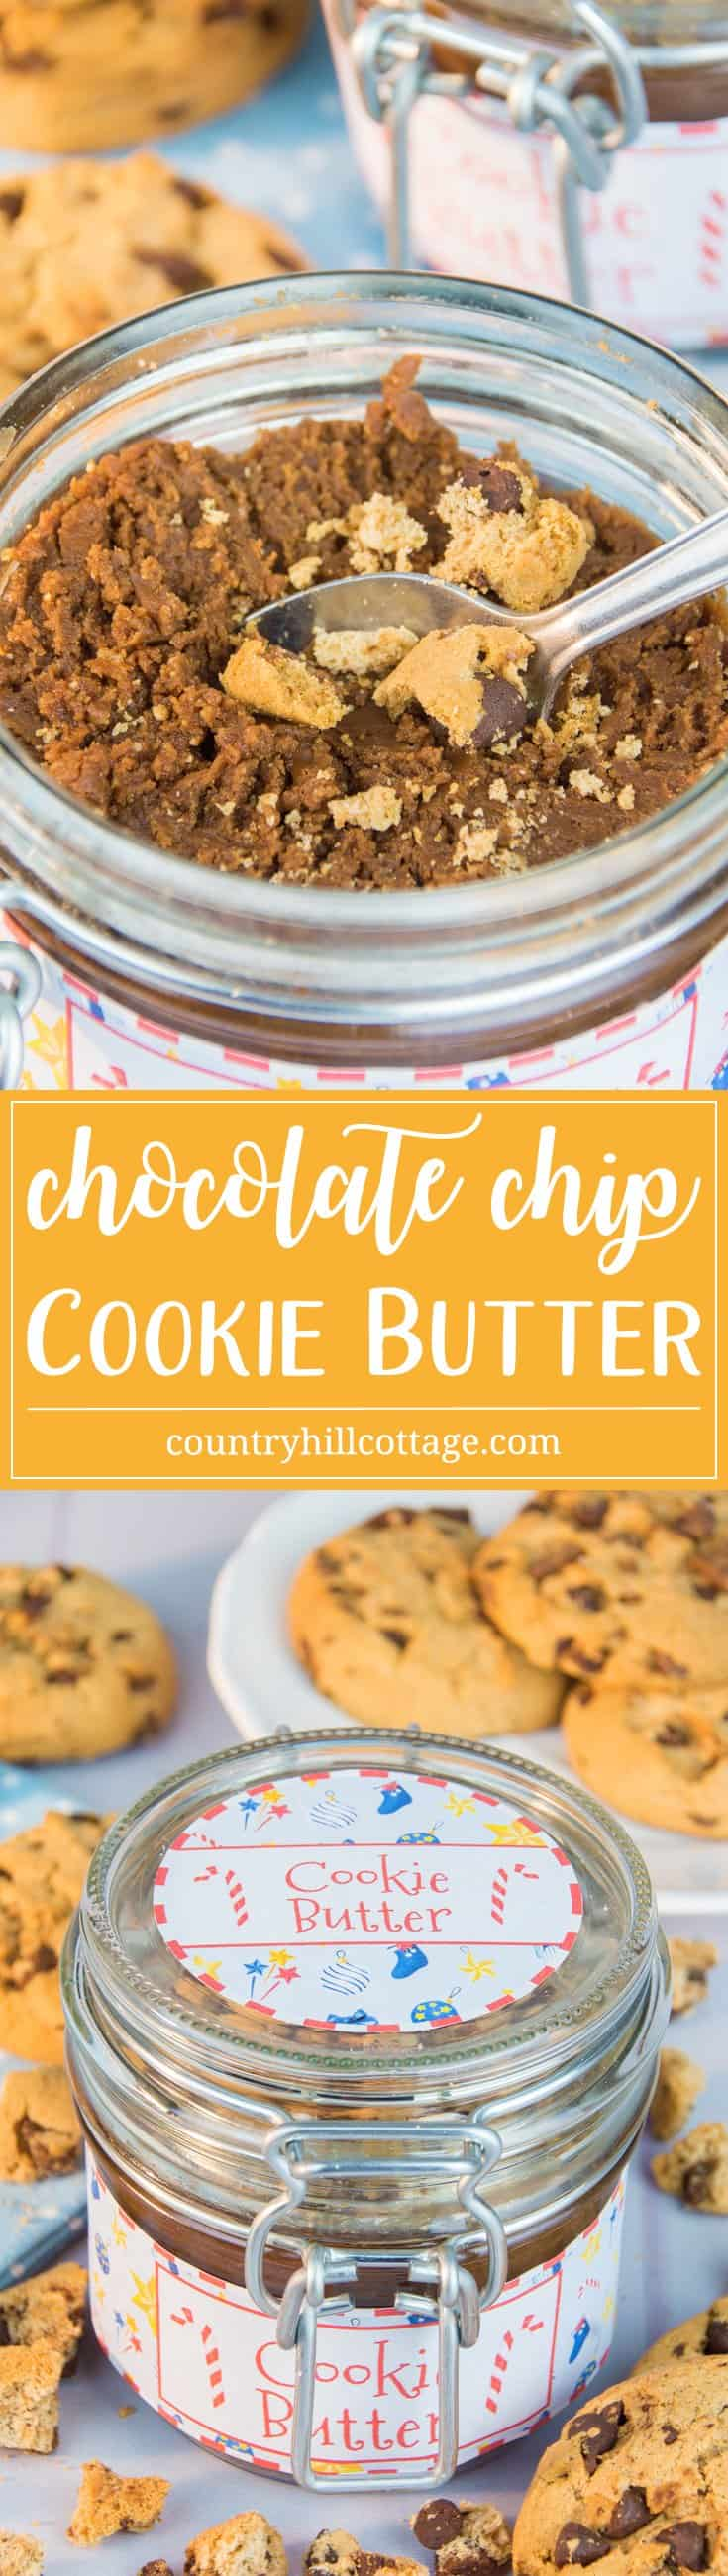 Homemade and yummy chocolate chip cookie butter with festive spices and free printable labels – 5 quick holiday gift giving ideas | countryhillcottage.com